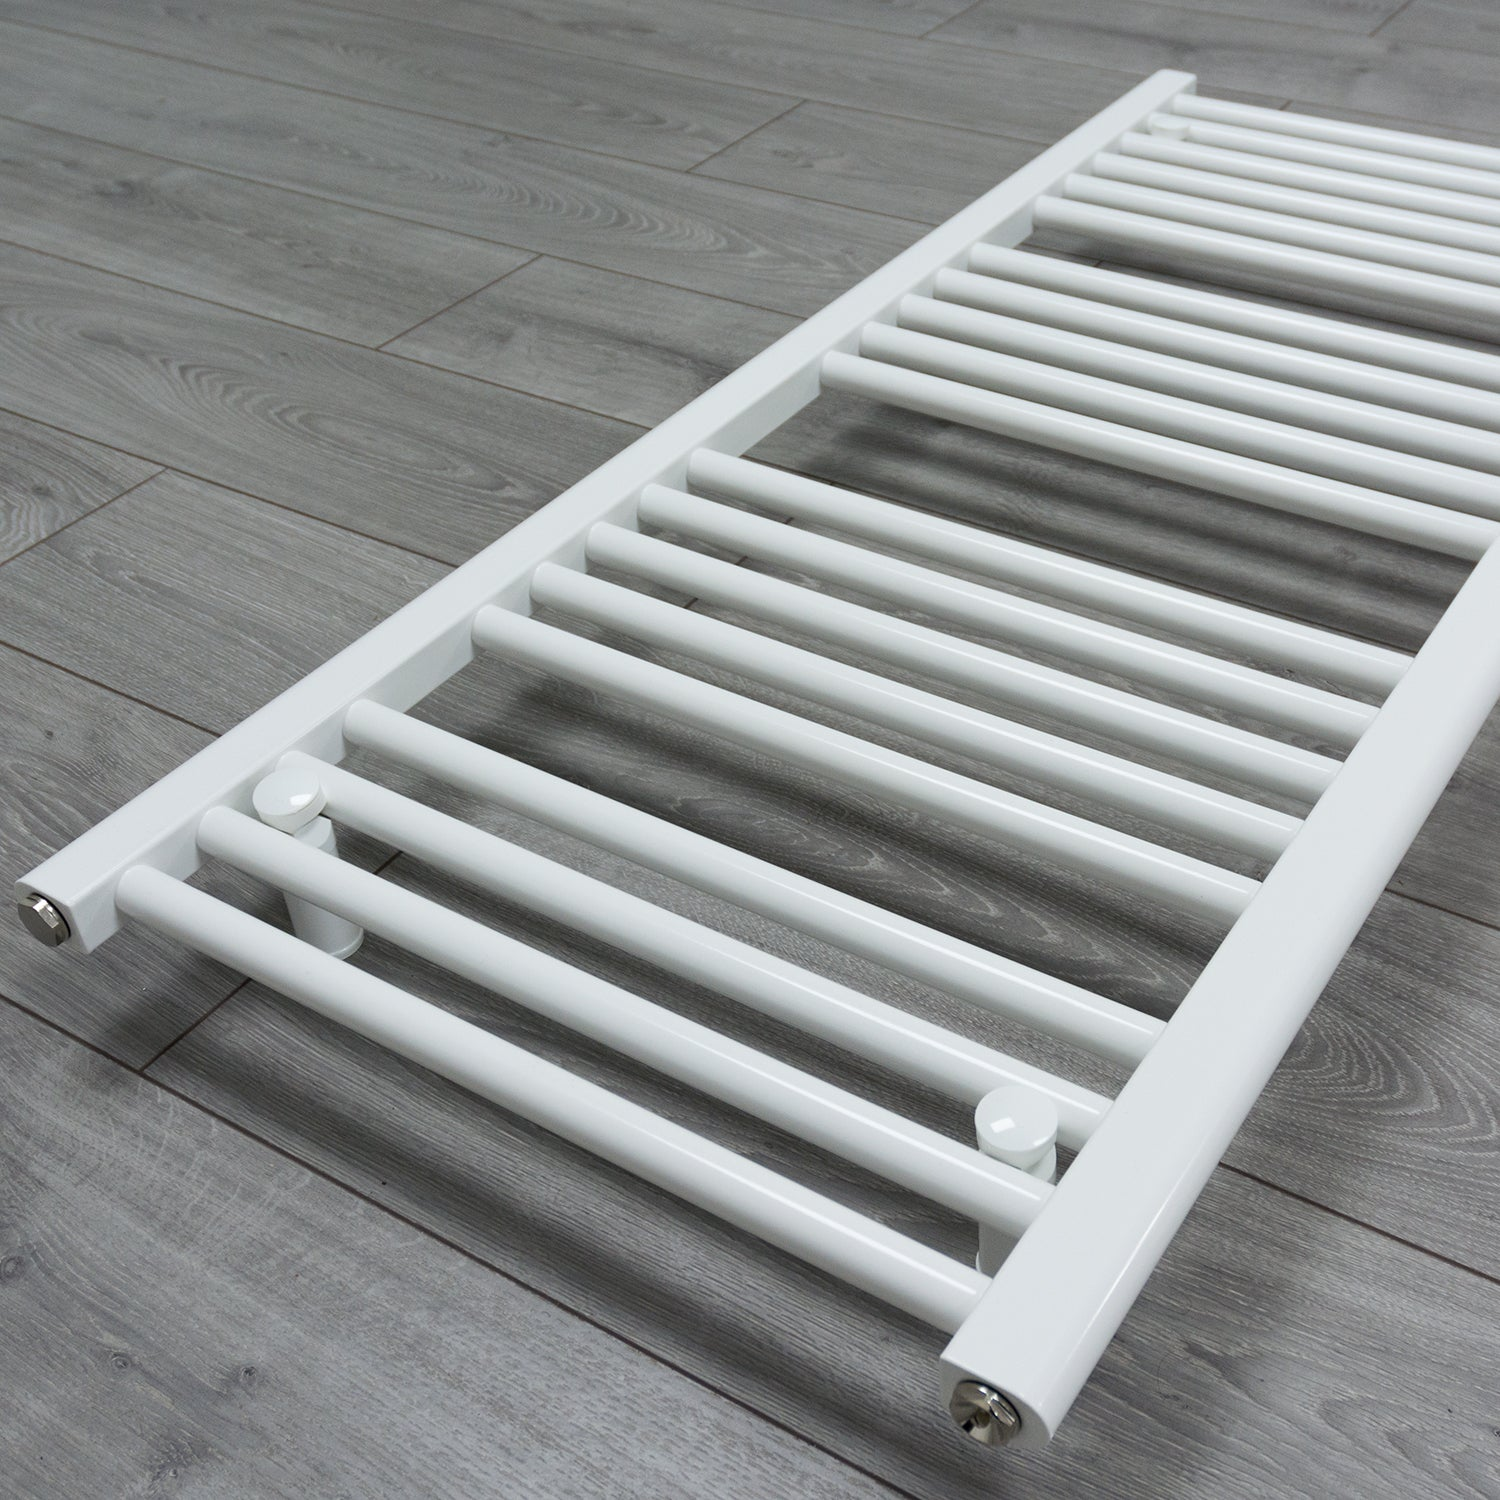 650mm x 1400mm White Heated Towel Rail Radiator Close Up Image